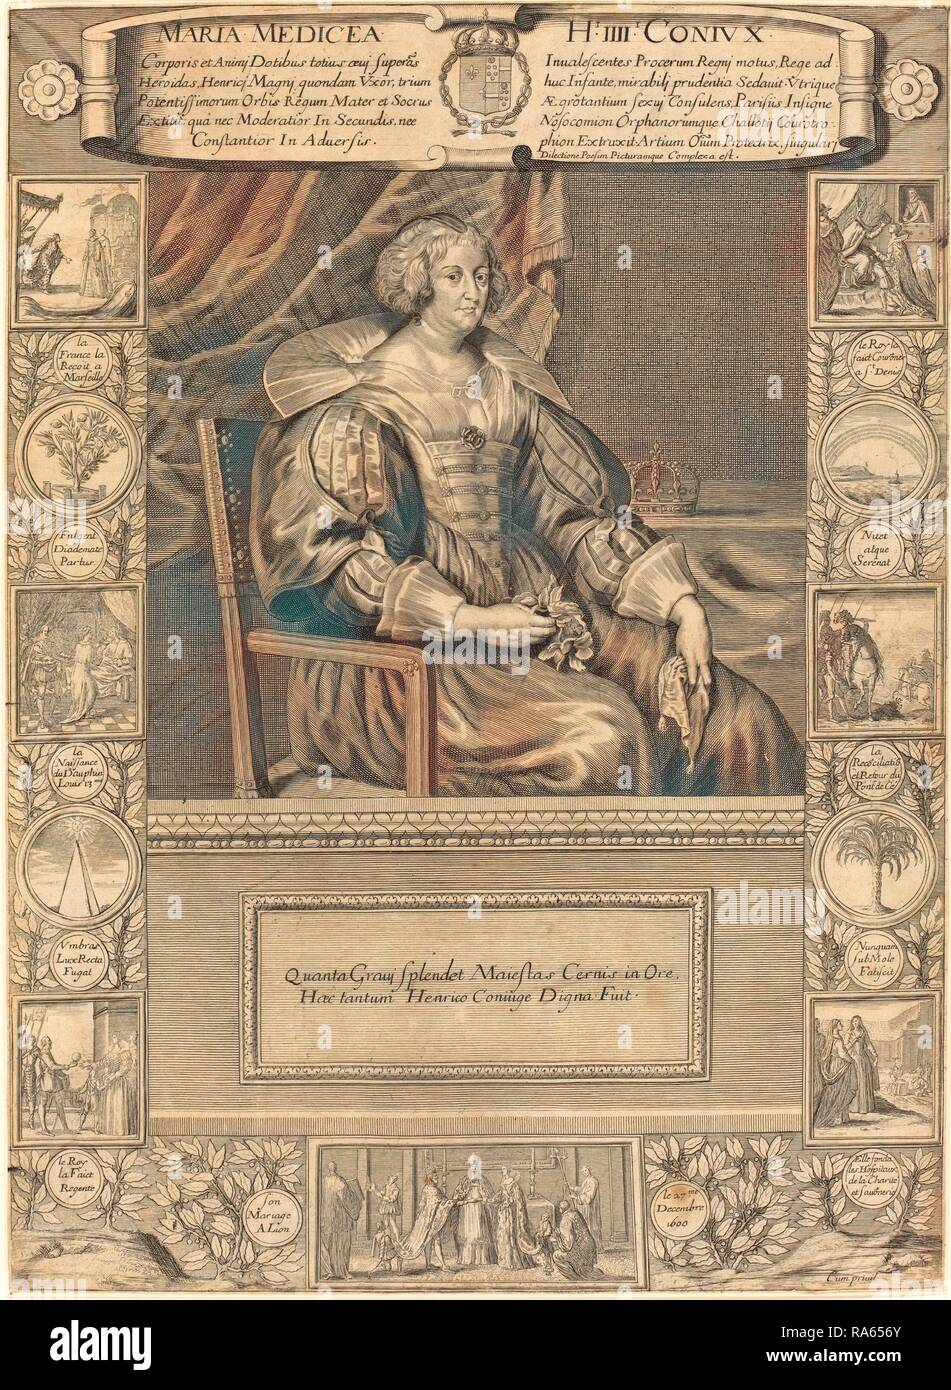 French 17th Century, Marie de Medici, engraving. Reimagined by Gibon. Classic art with a modern twist reimagined - Stock Image